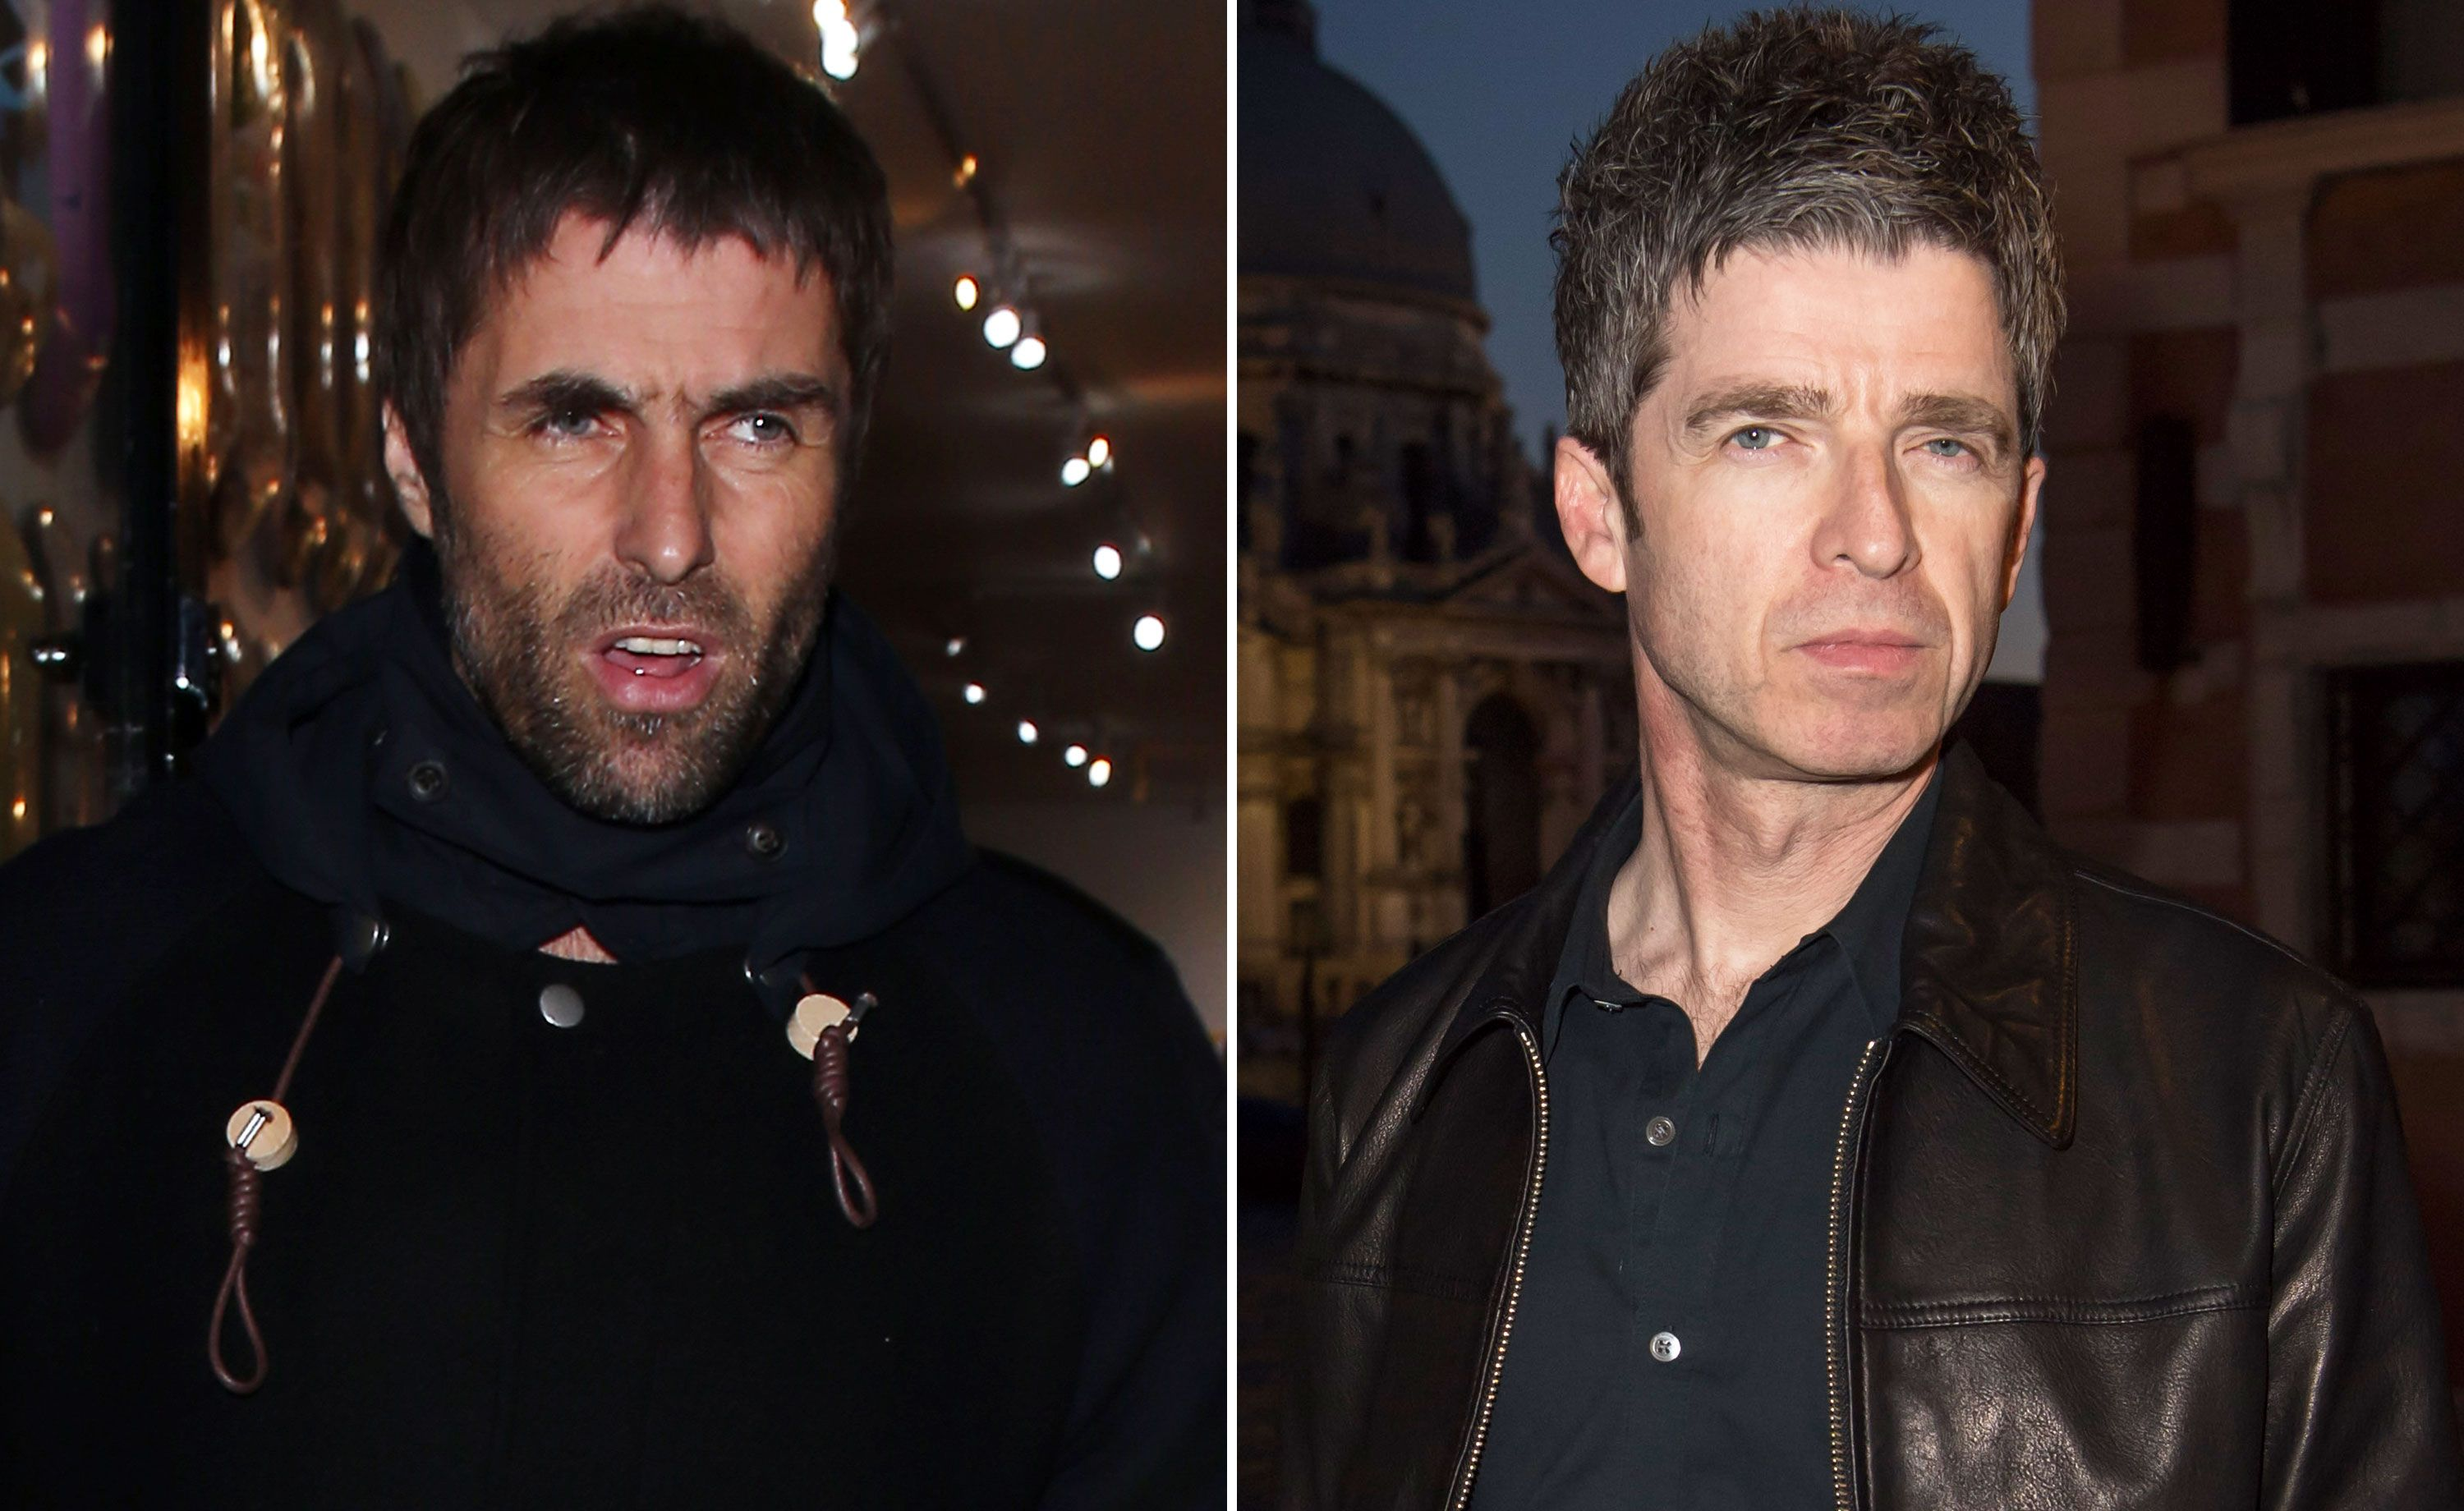 e163af25f8 Noel Gallagher hits out at brother Liam s actions surrounding the  Manchester benefit concerts